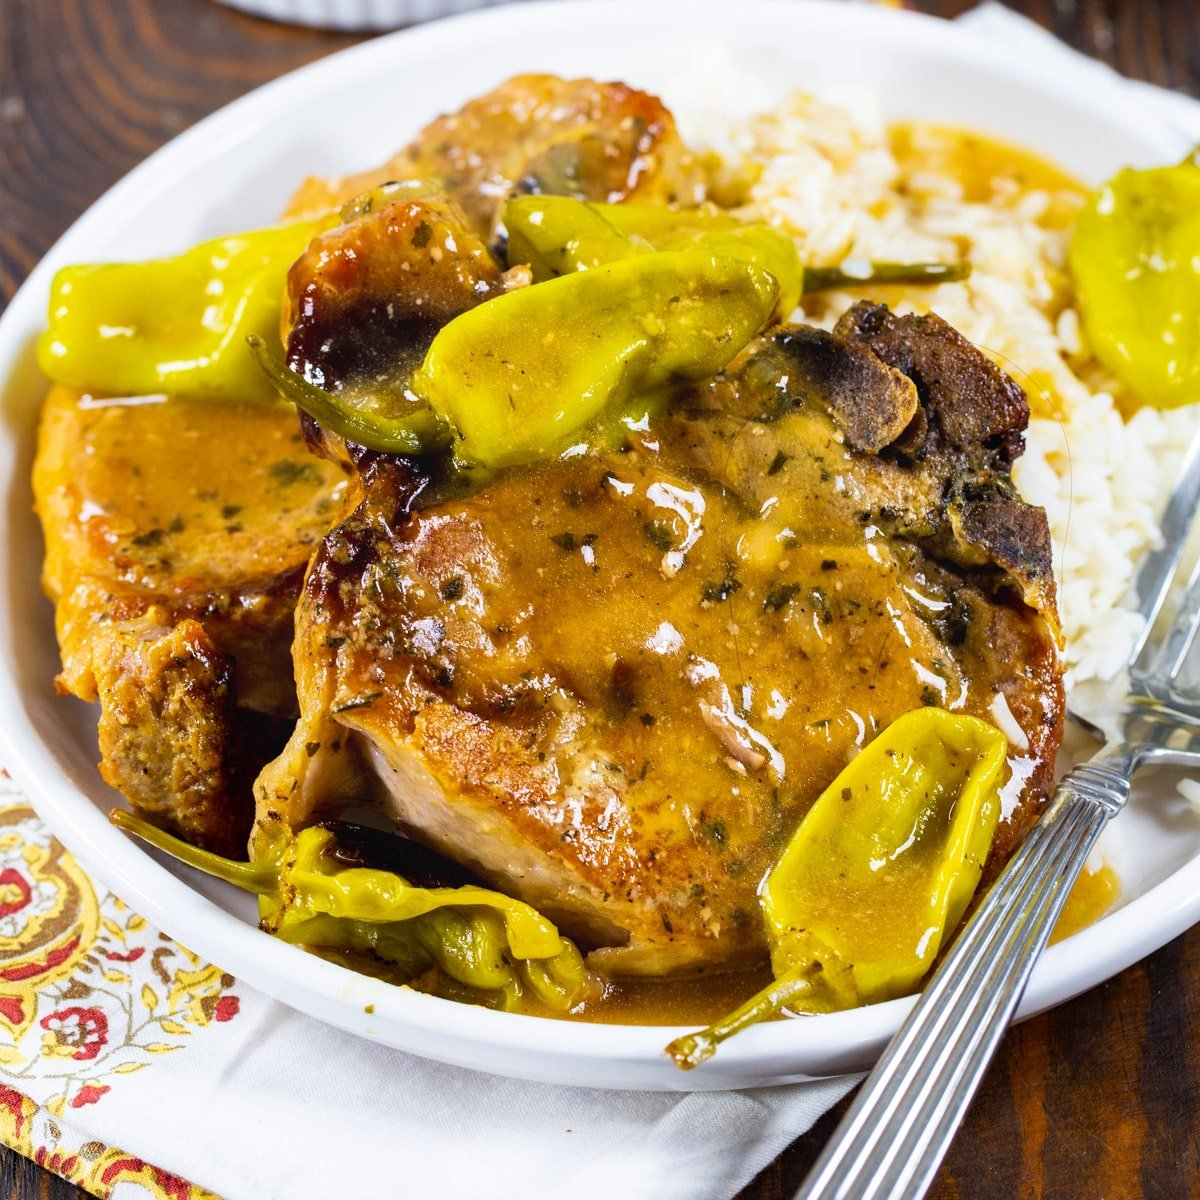 Two Slow Cooker Mississippi Pork Chops on a plate.